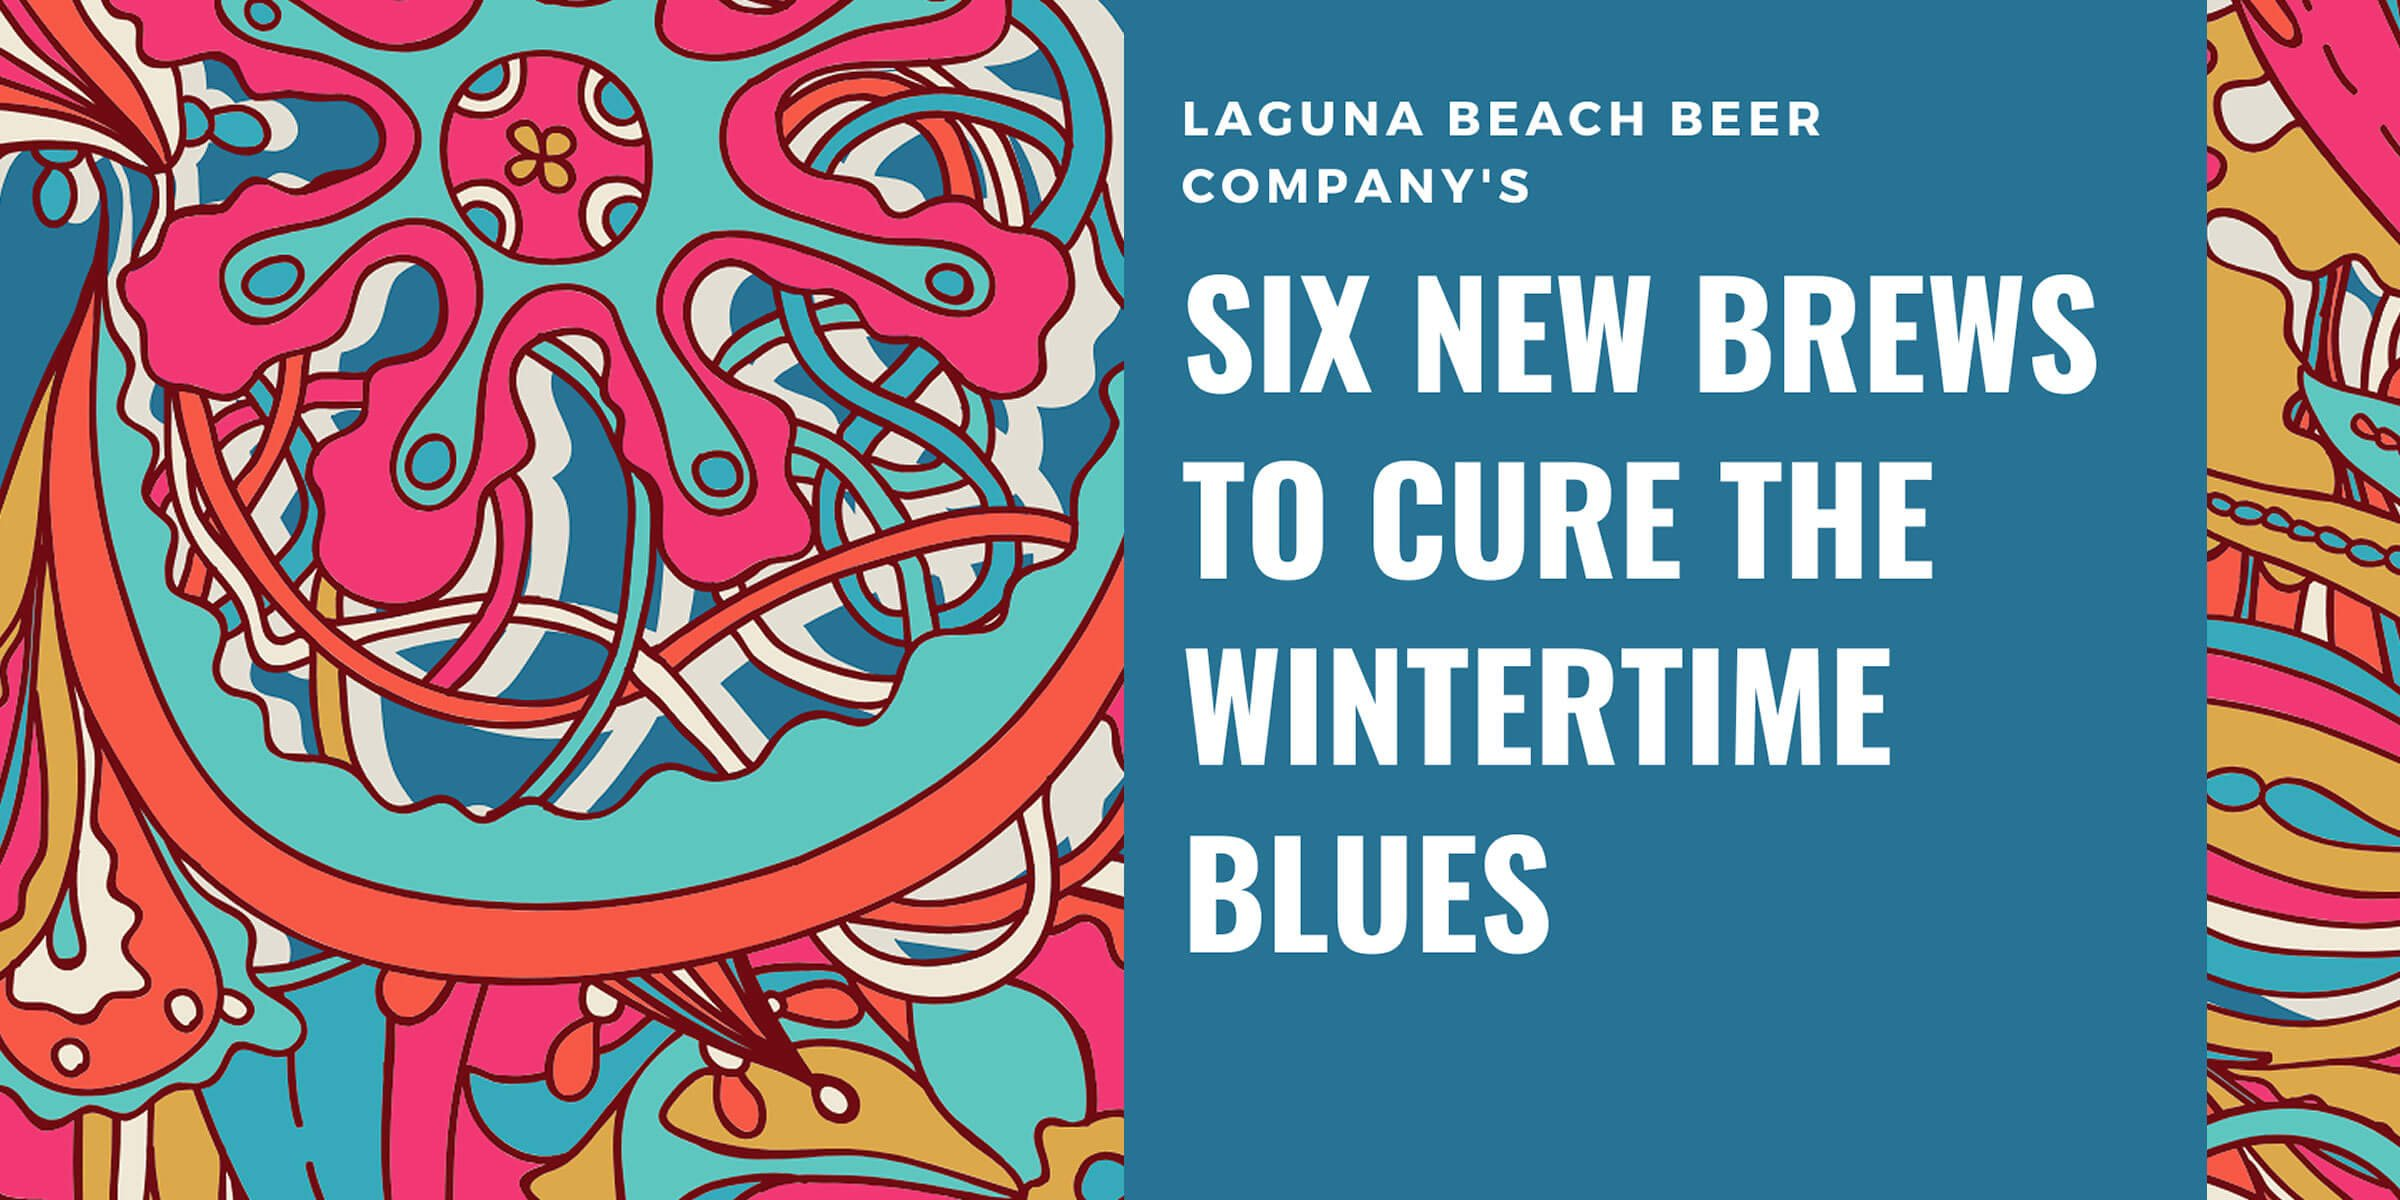 Laguna Beach Beer Company is hosting an event at its RSM location celebrating the launch of six new beers and the hire of its new head brewer, Chris Linn.